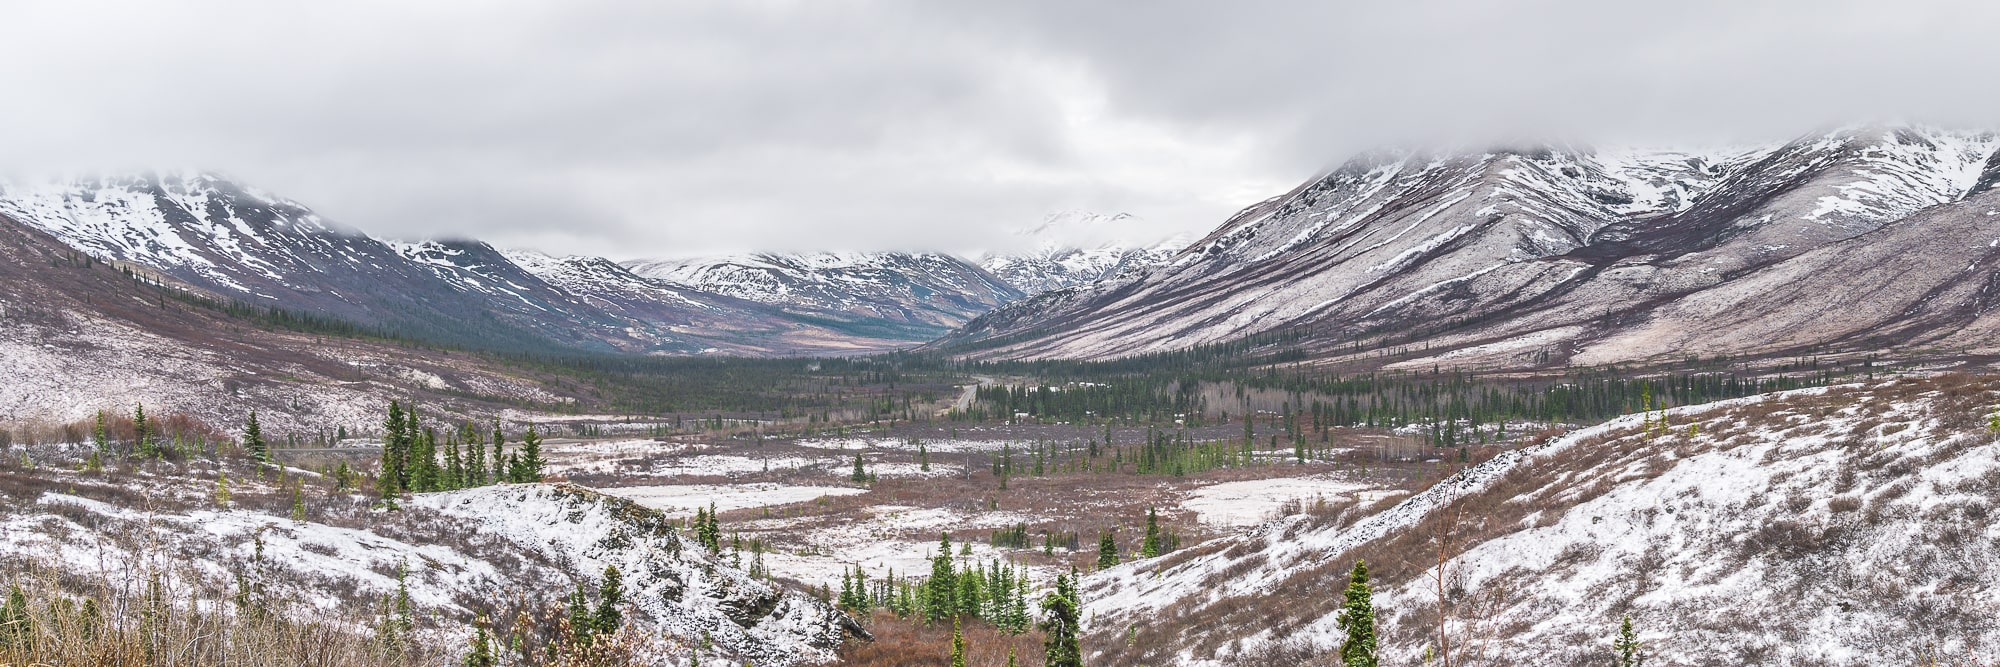 Dempster Highway views Yukon road trip